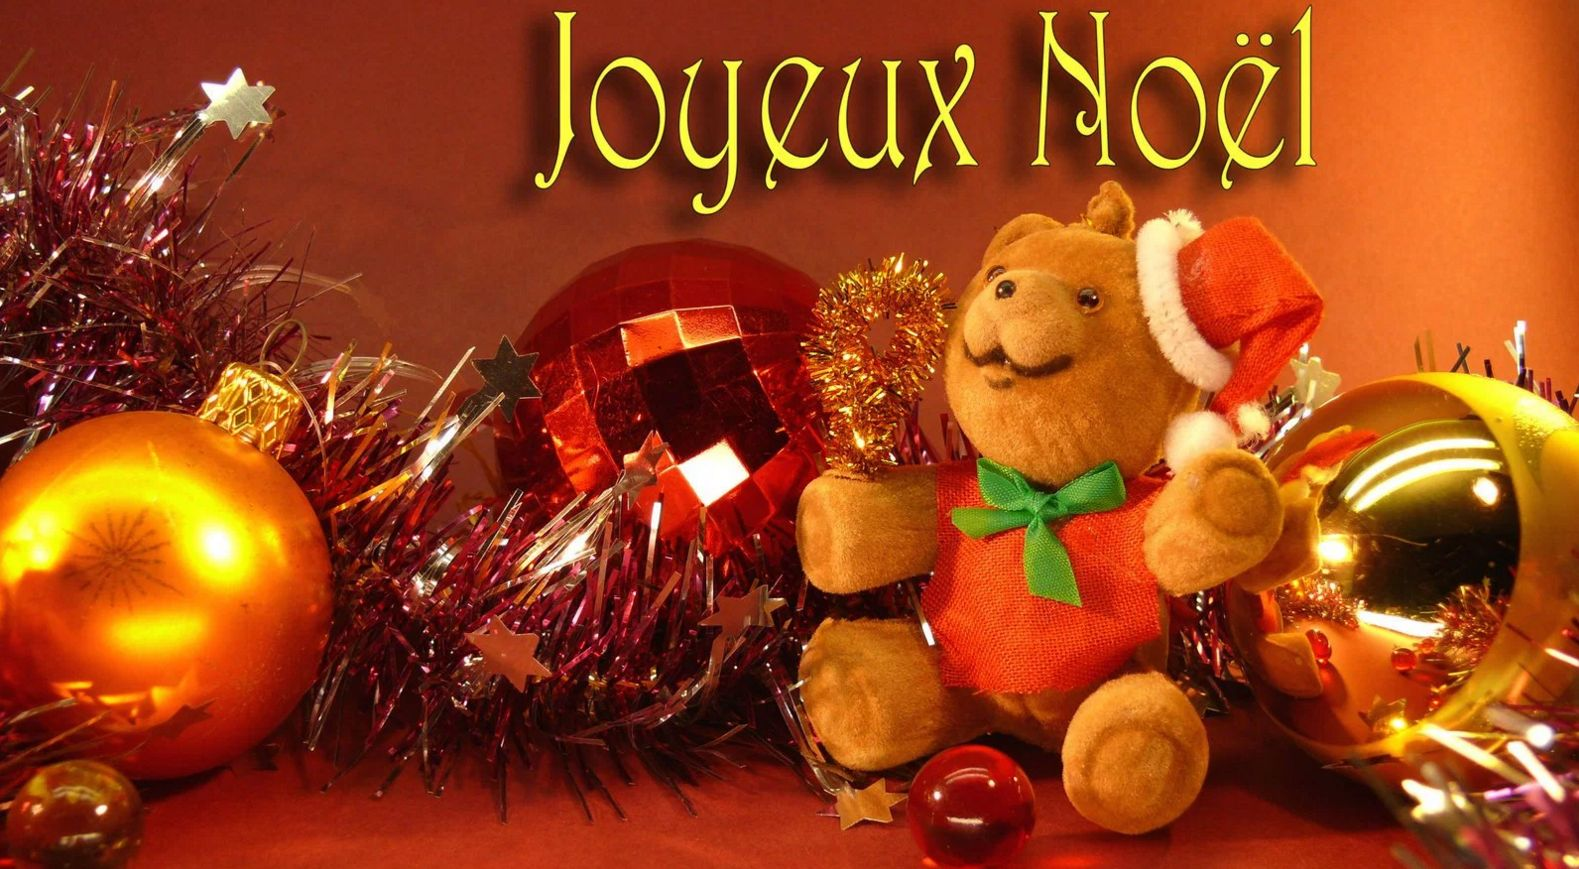 Joyeux Noel Hofc Horgues Odos Football Club